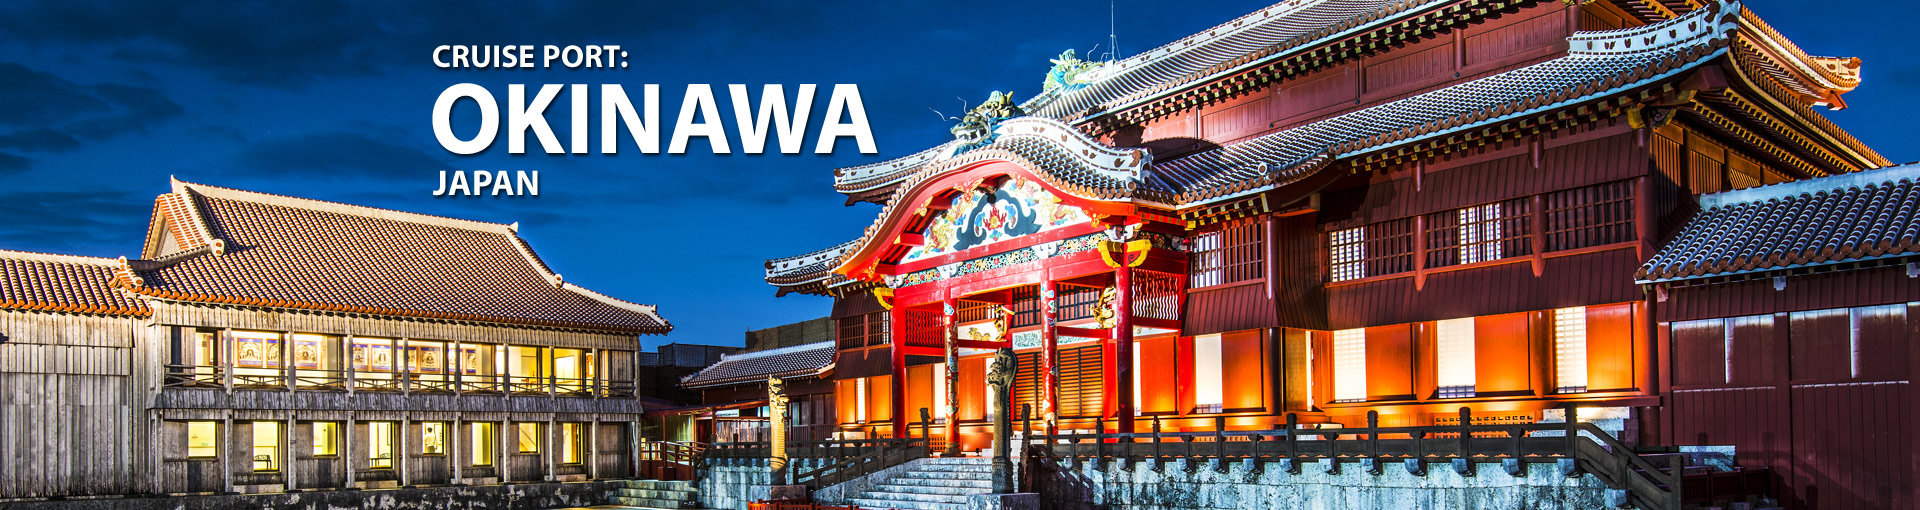 Cruises from Okinawa, Japan